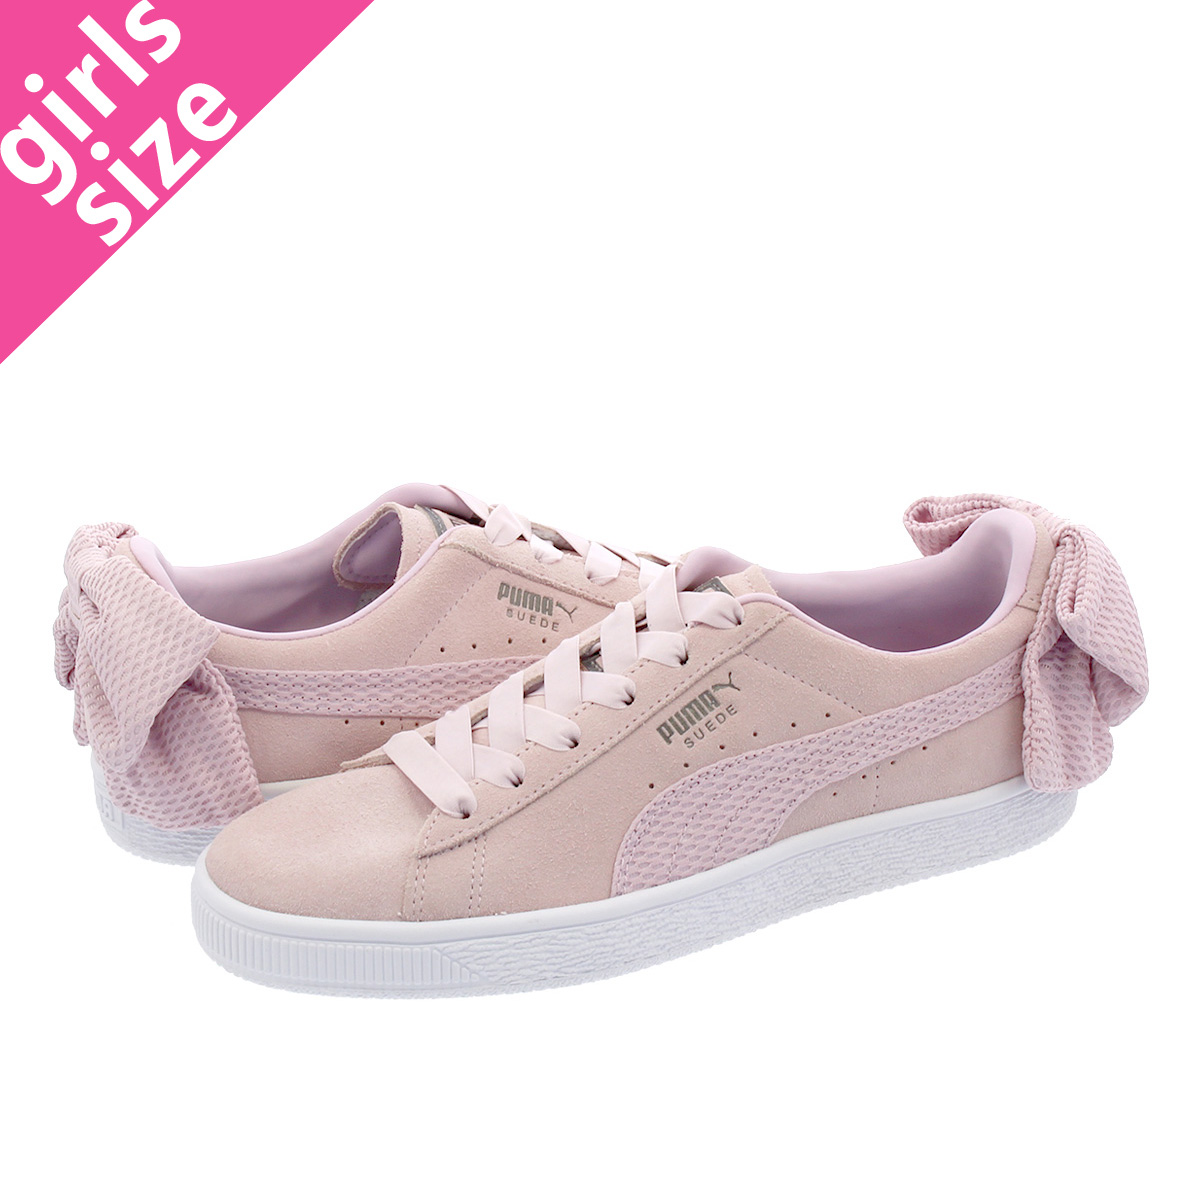 PUMA Suede Bow Uprising wns women shoes